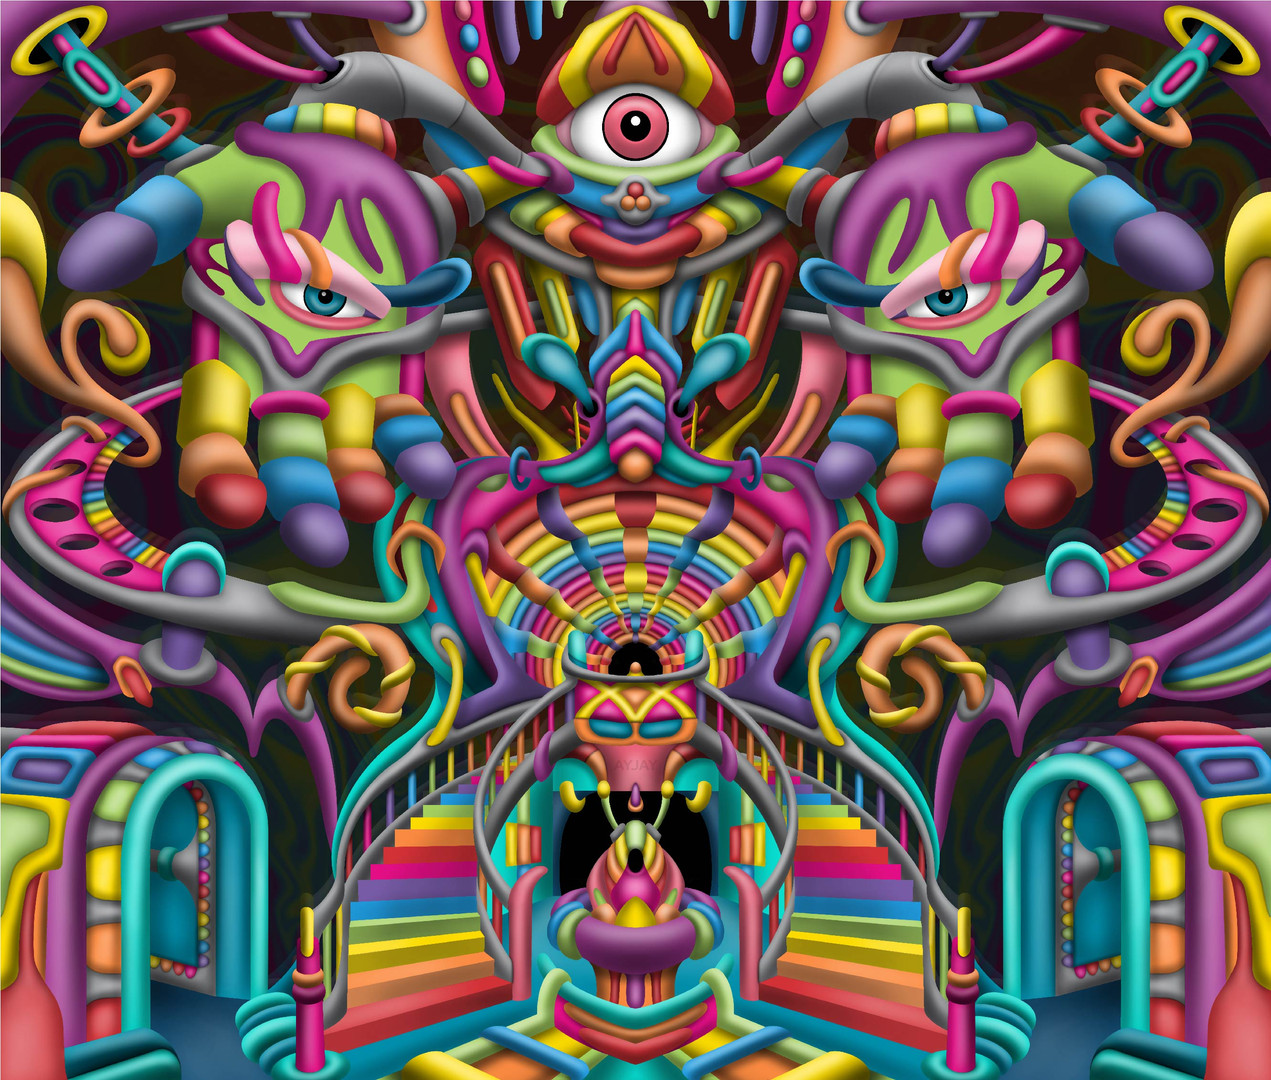 Celestial Stairway DMT art by Ayjay Art